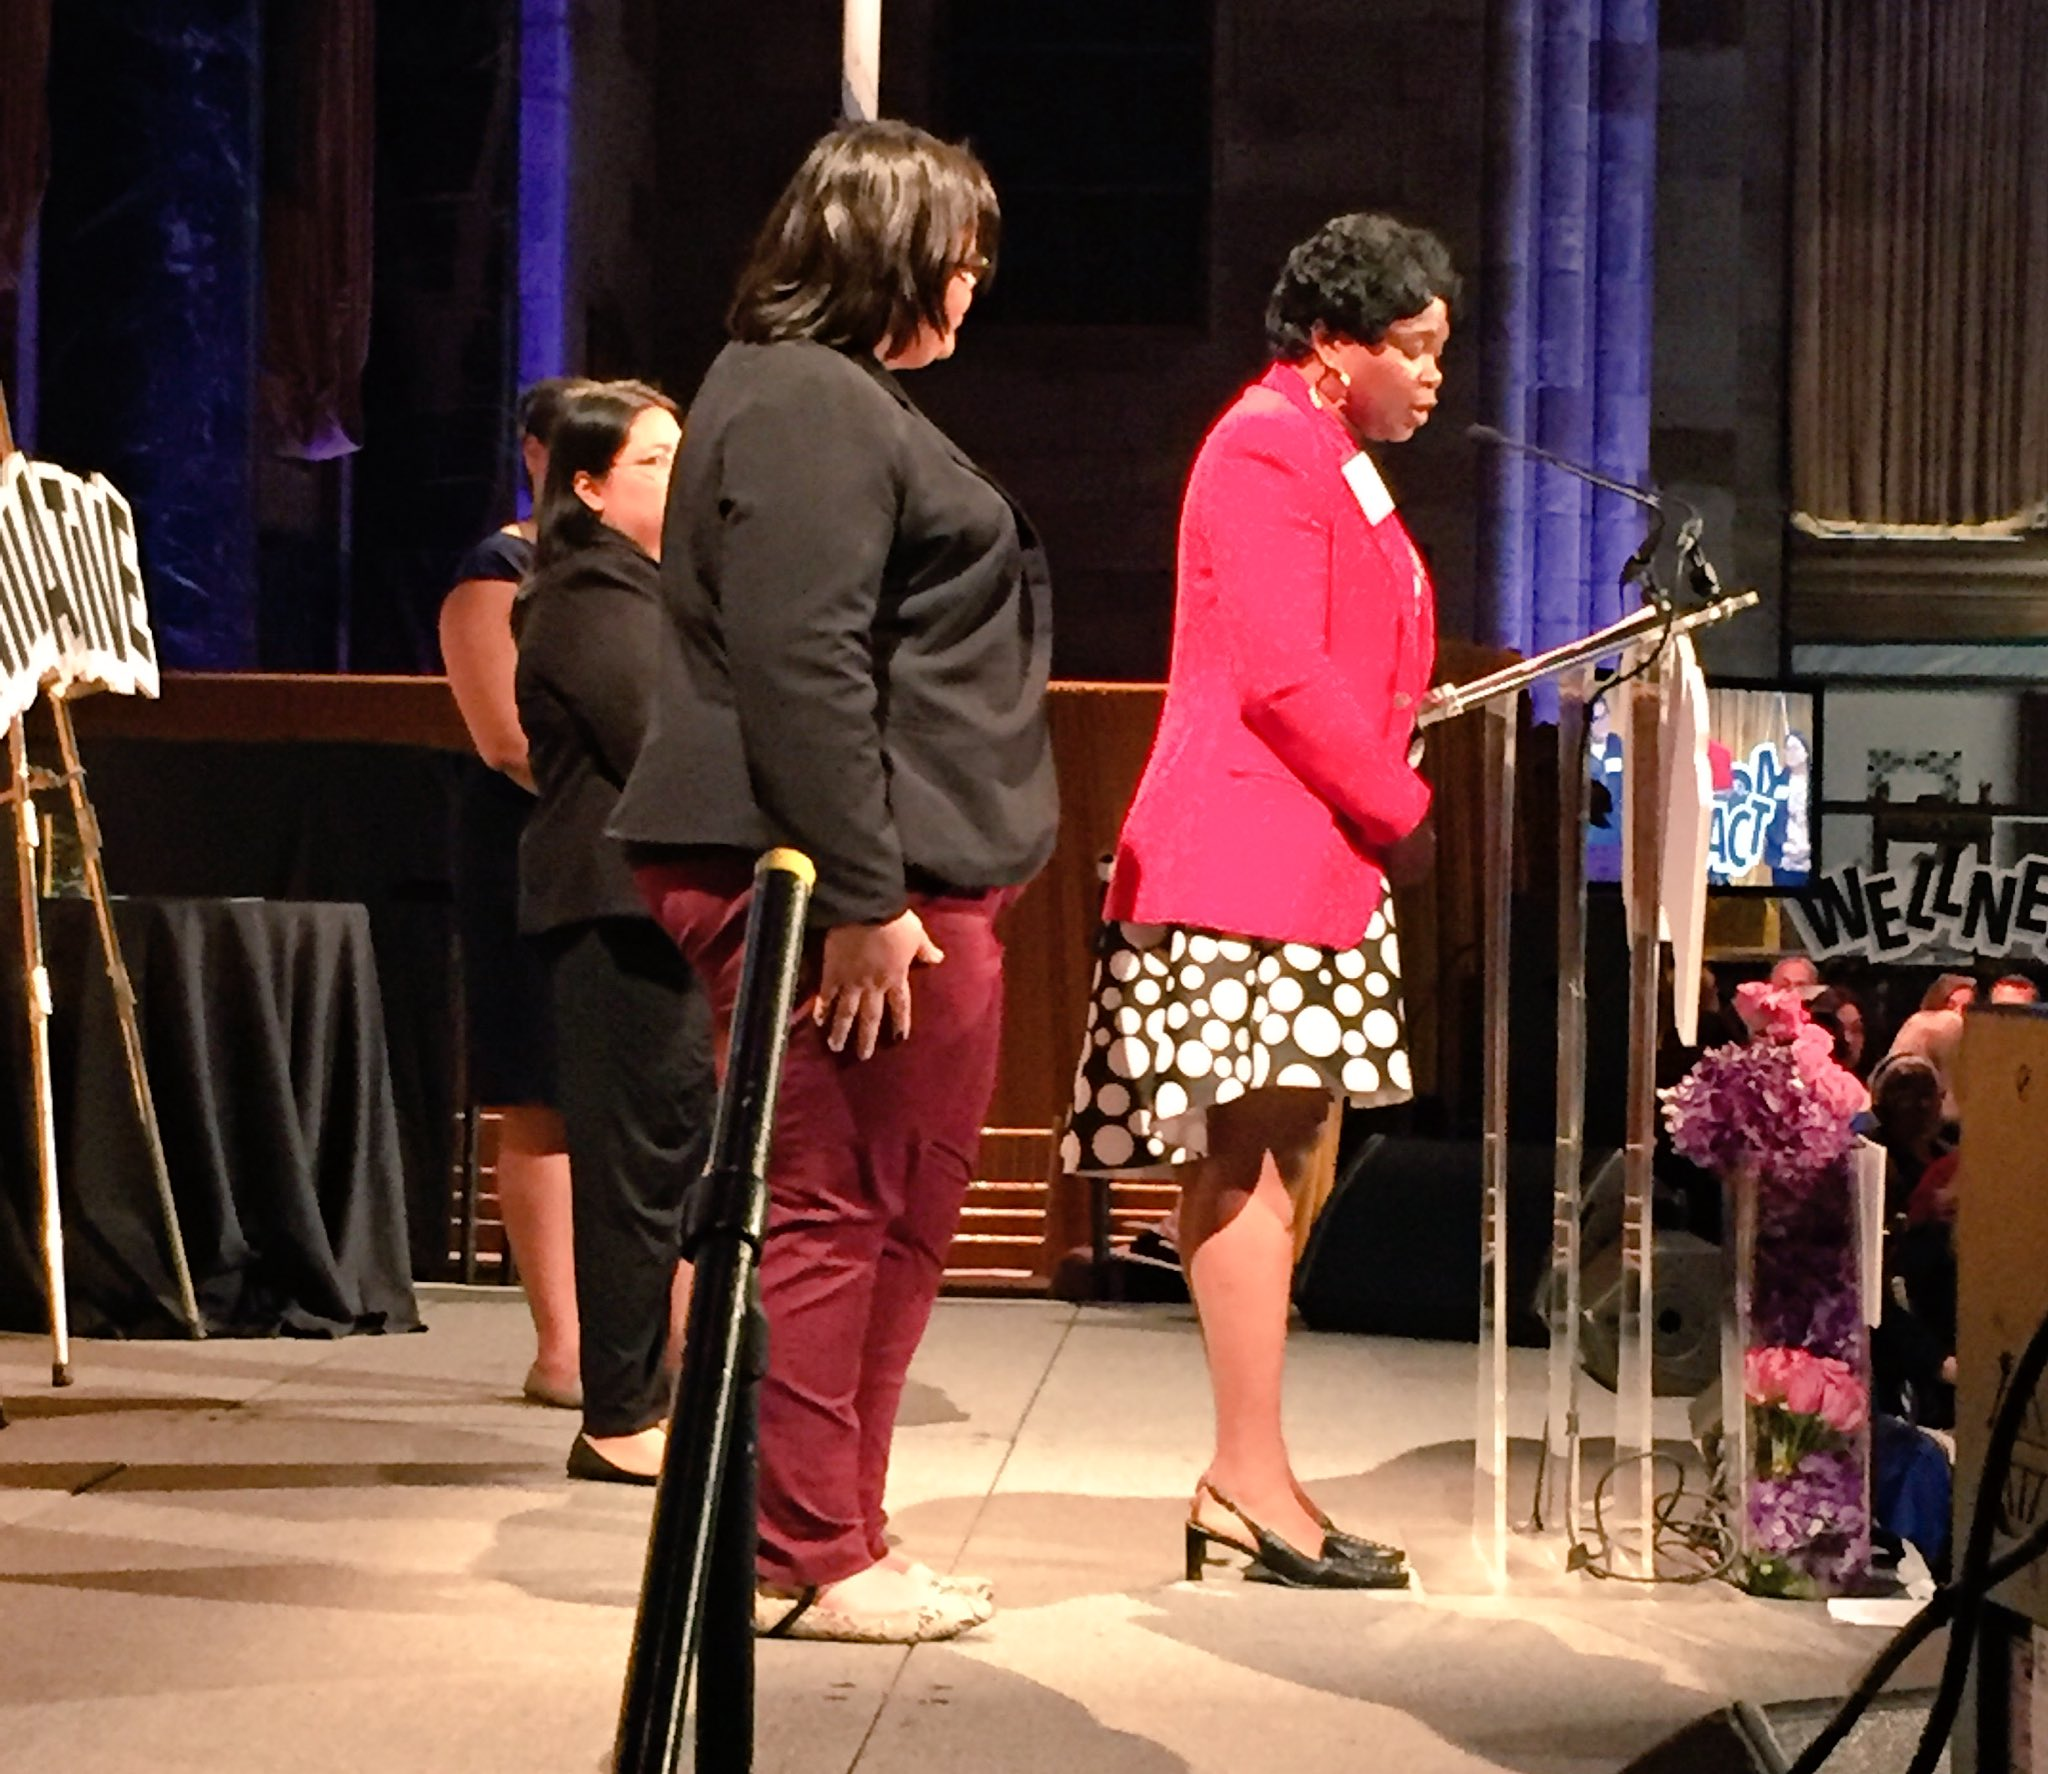 """""""ReadNYC assisted me in a way I didn't expect! They helped me & my child get on our feet."""" --ReadNYC parent #PowerofWomen https://t.co/oe0CvX1ZHa"""